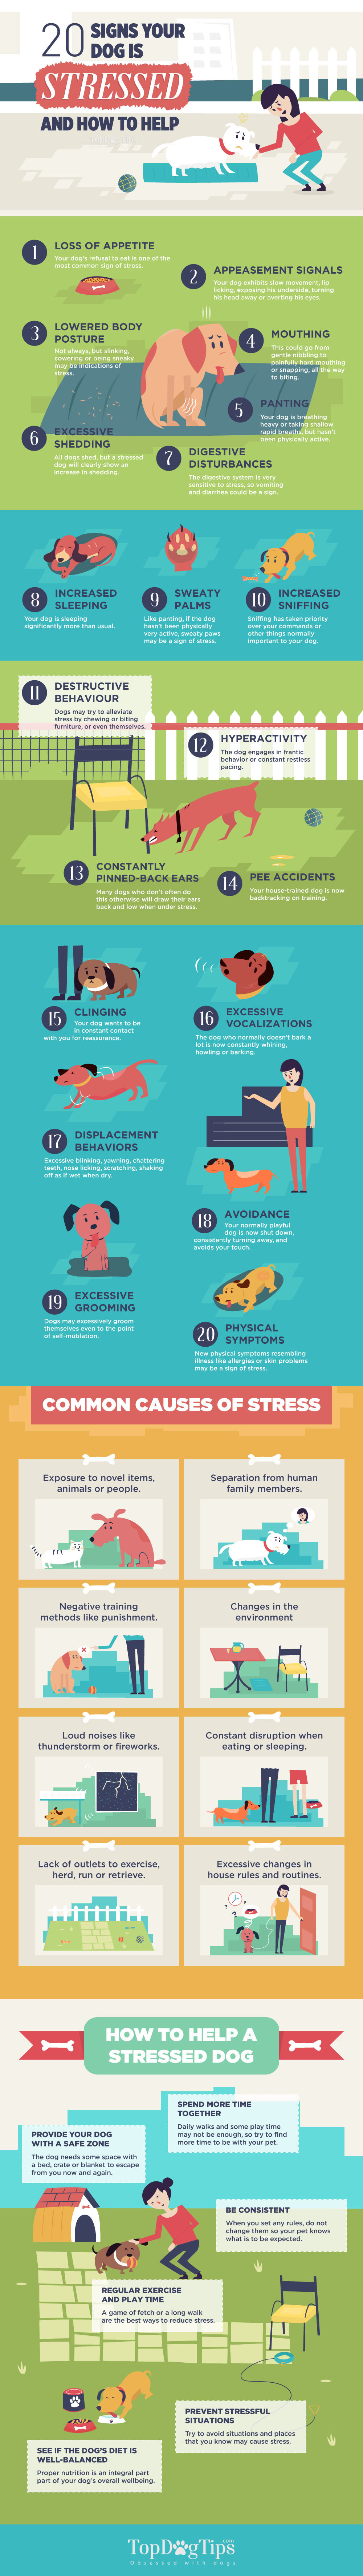 Signs-of-Stress-in-Dogs.jpg